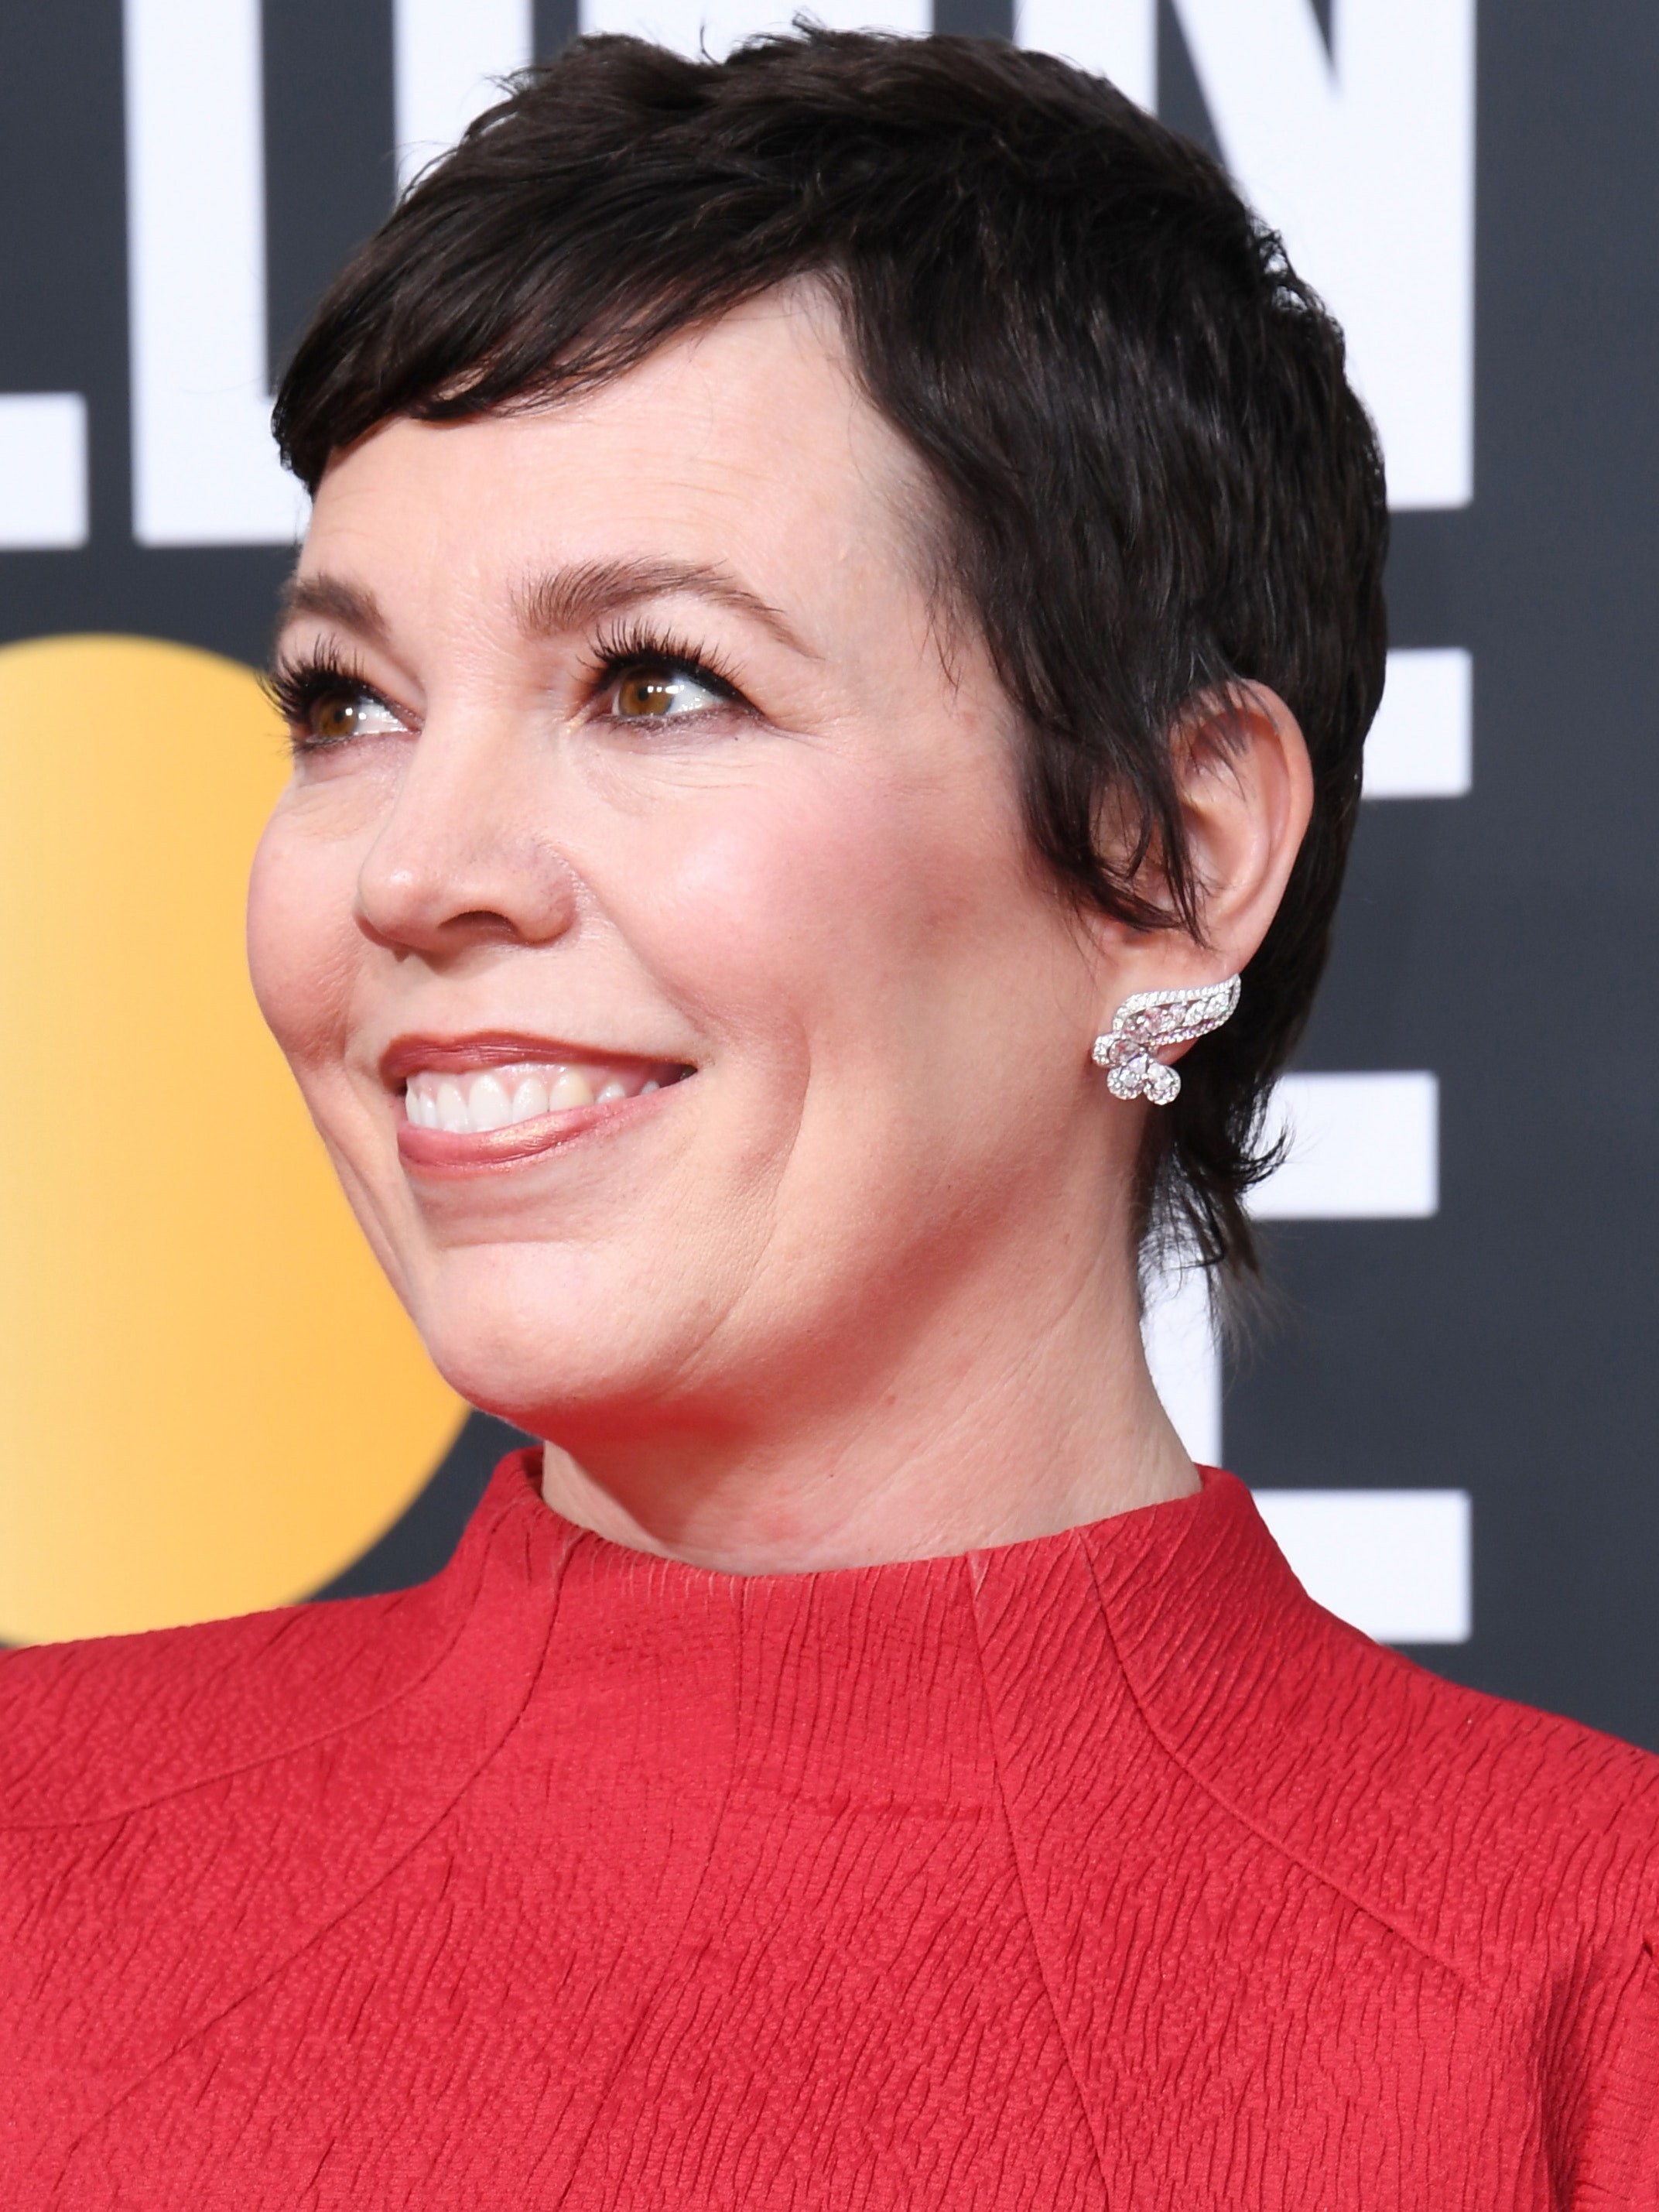 Olivia Colman Golden Globes 2020 hair and makeup look